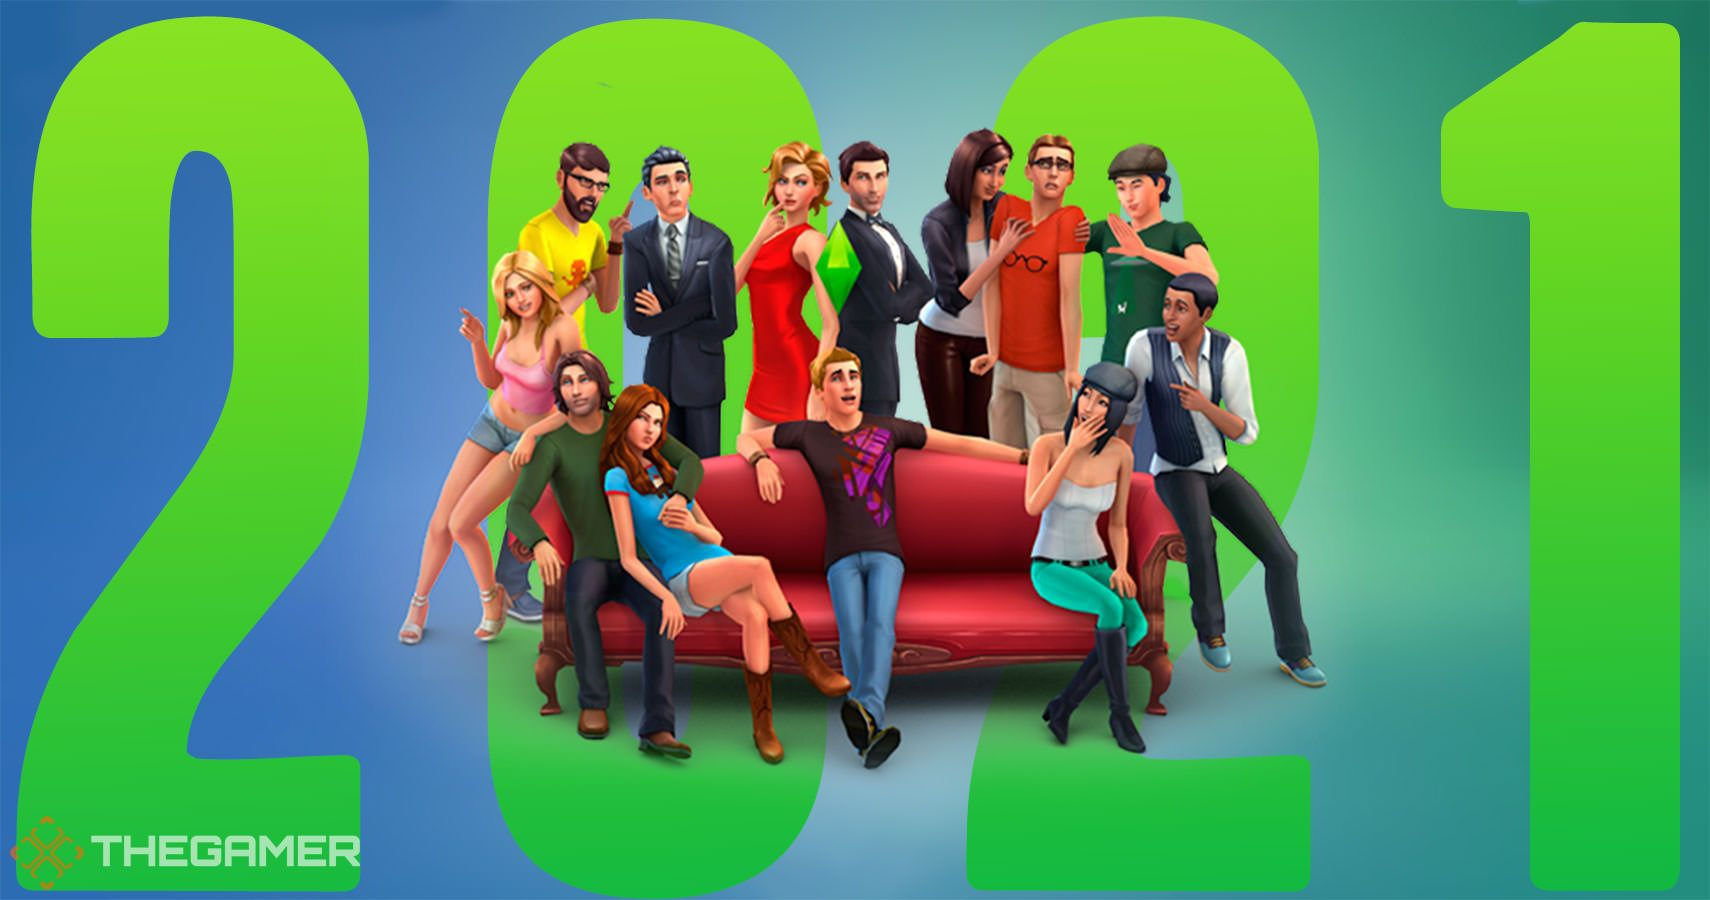 What The Sims 4 Needs To Survive in 2021